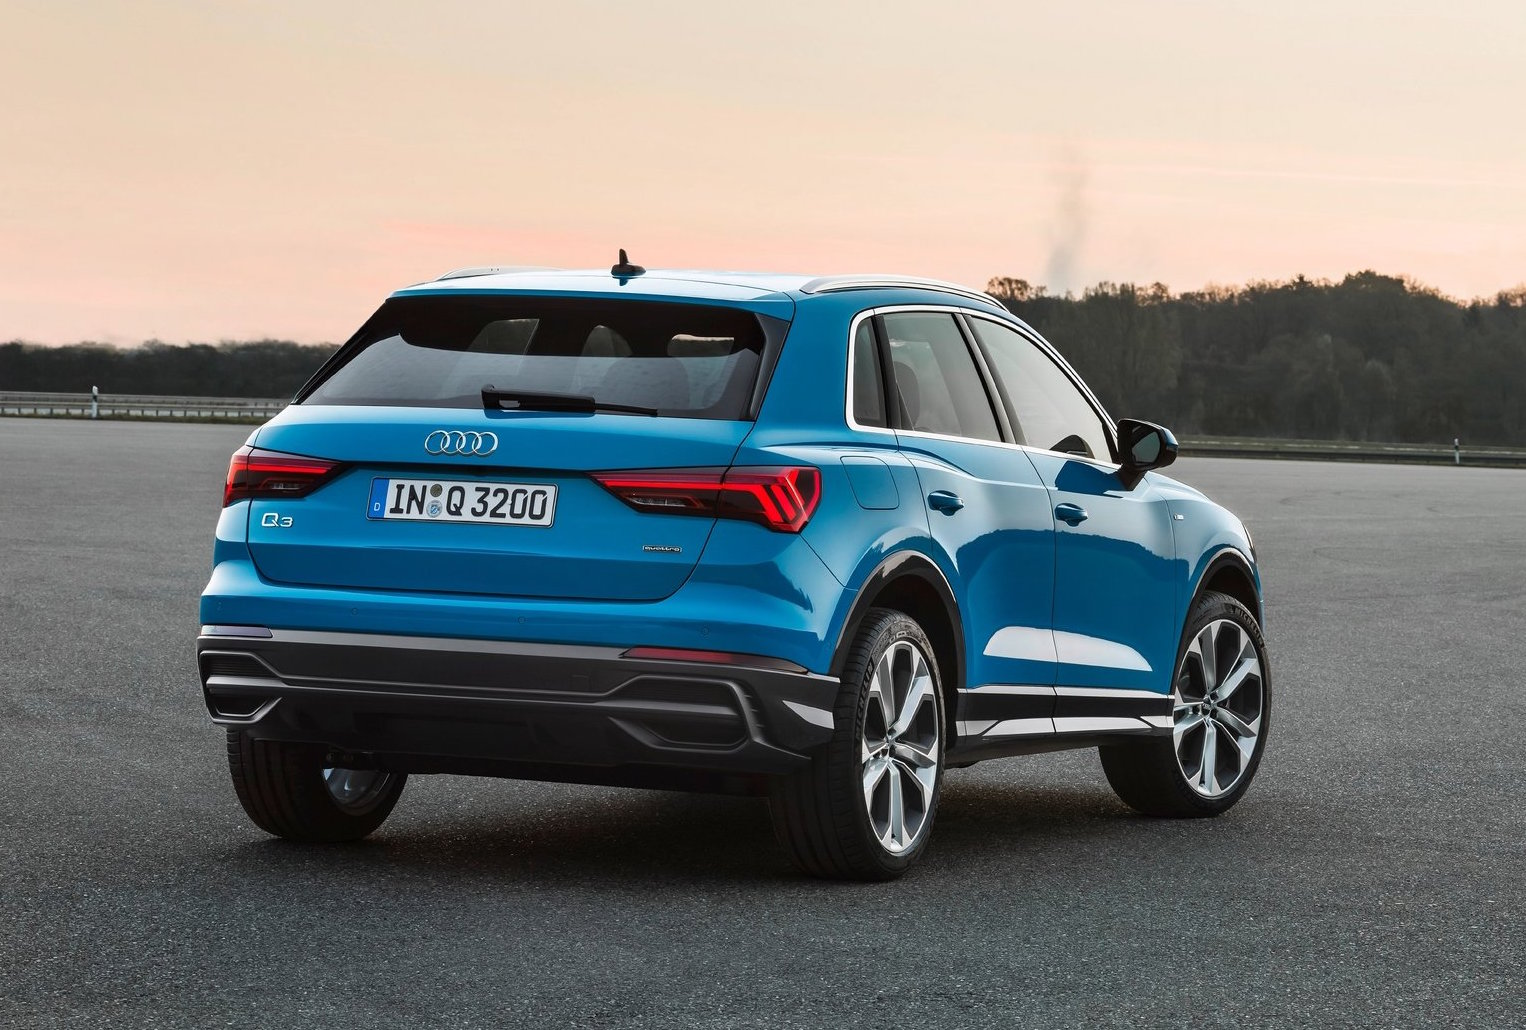 2019 Audi Q3 officially revealed | PerformanceDrive